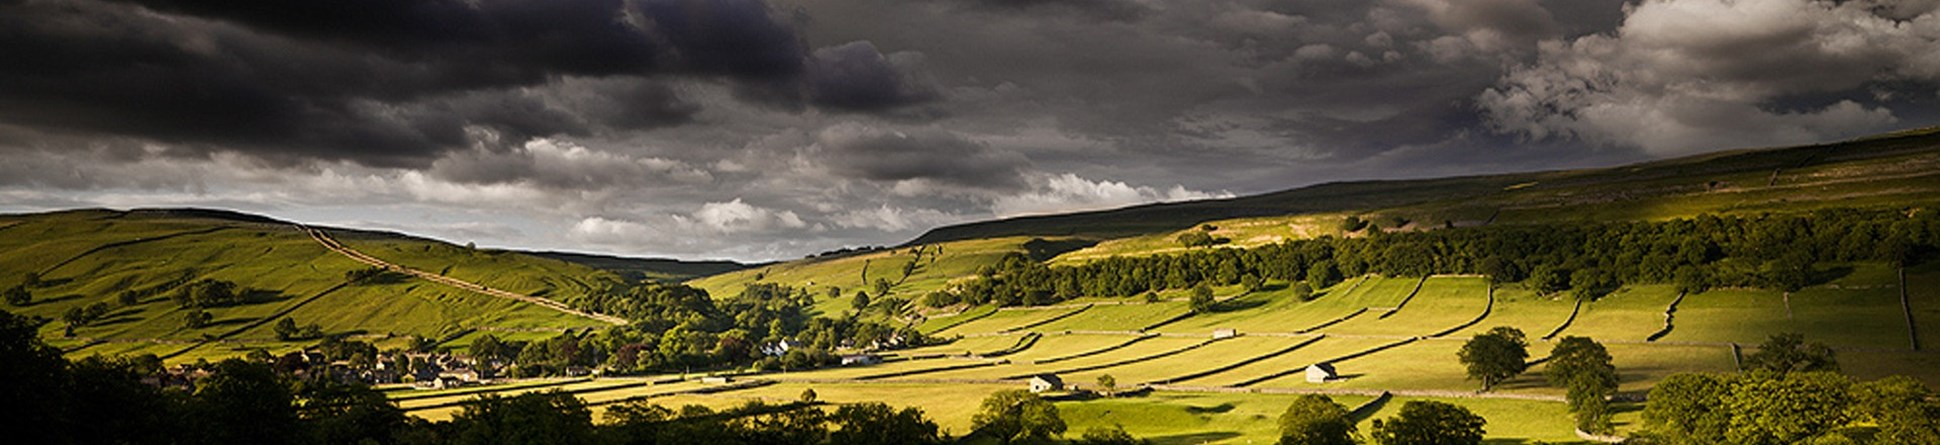 Field barns in the landscape of the Yorkshire Dales National Park